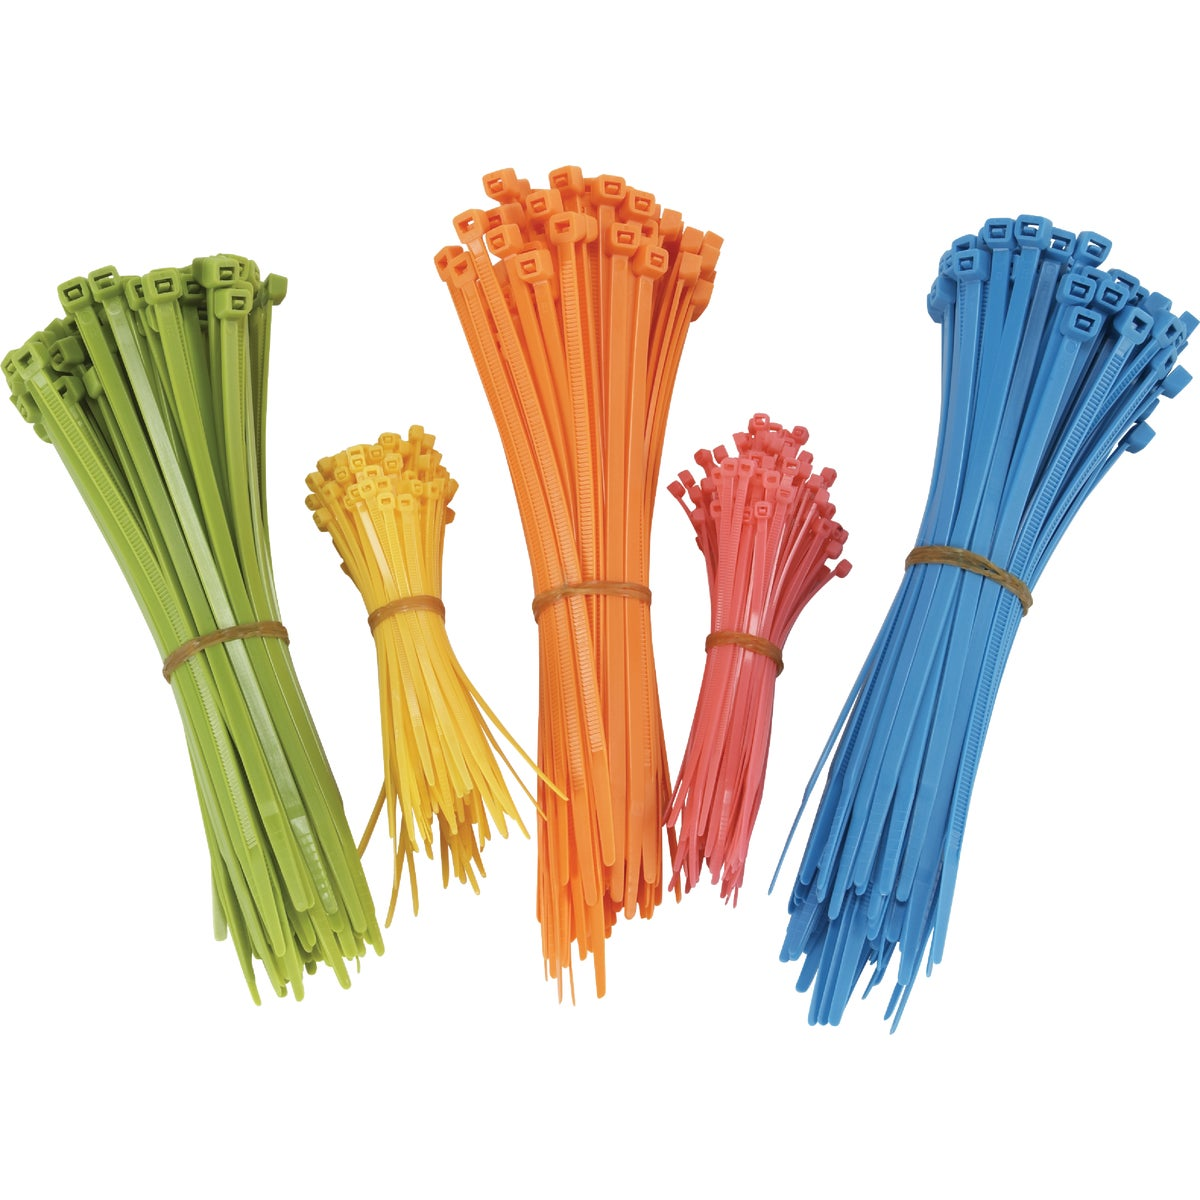 500PC ASSORTED CABLE TIE